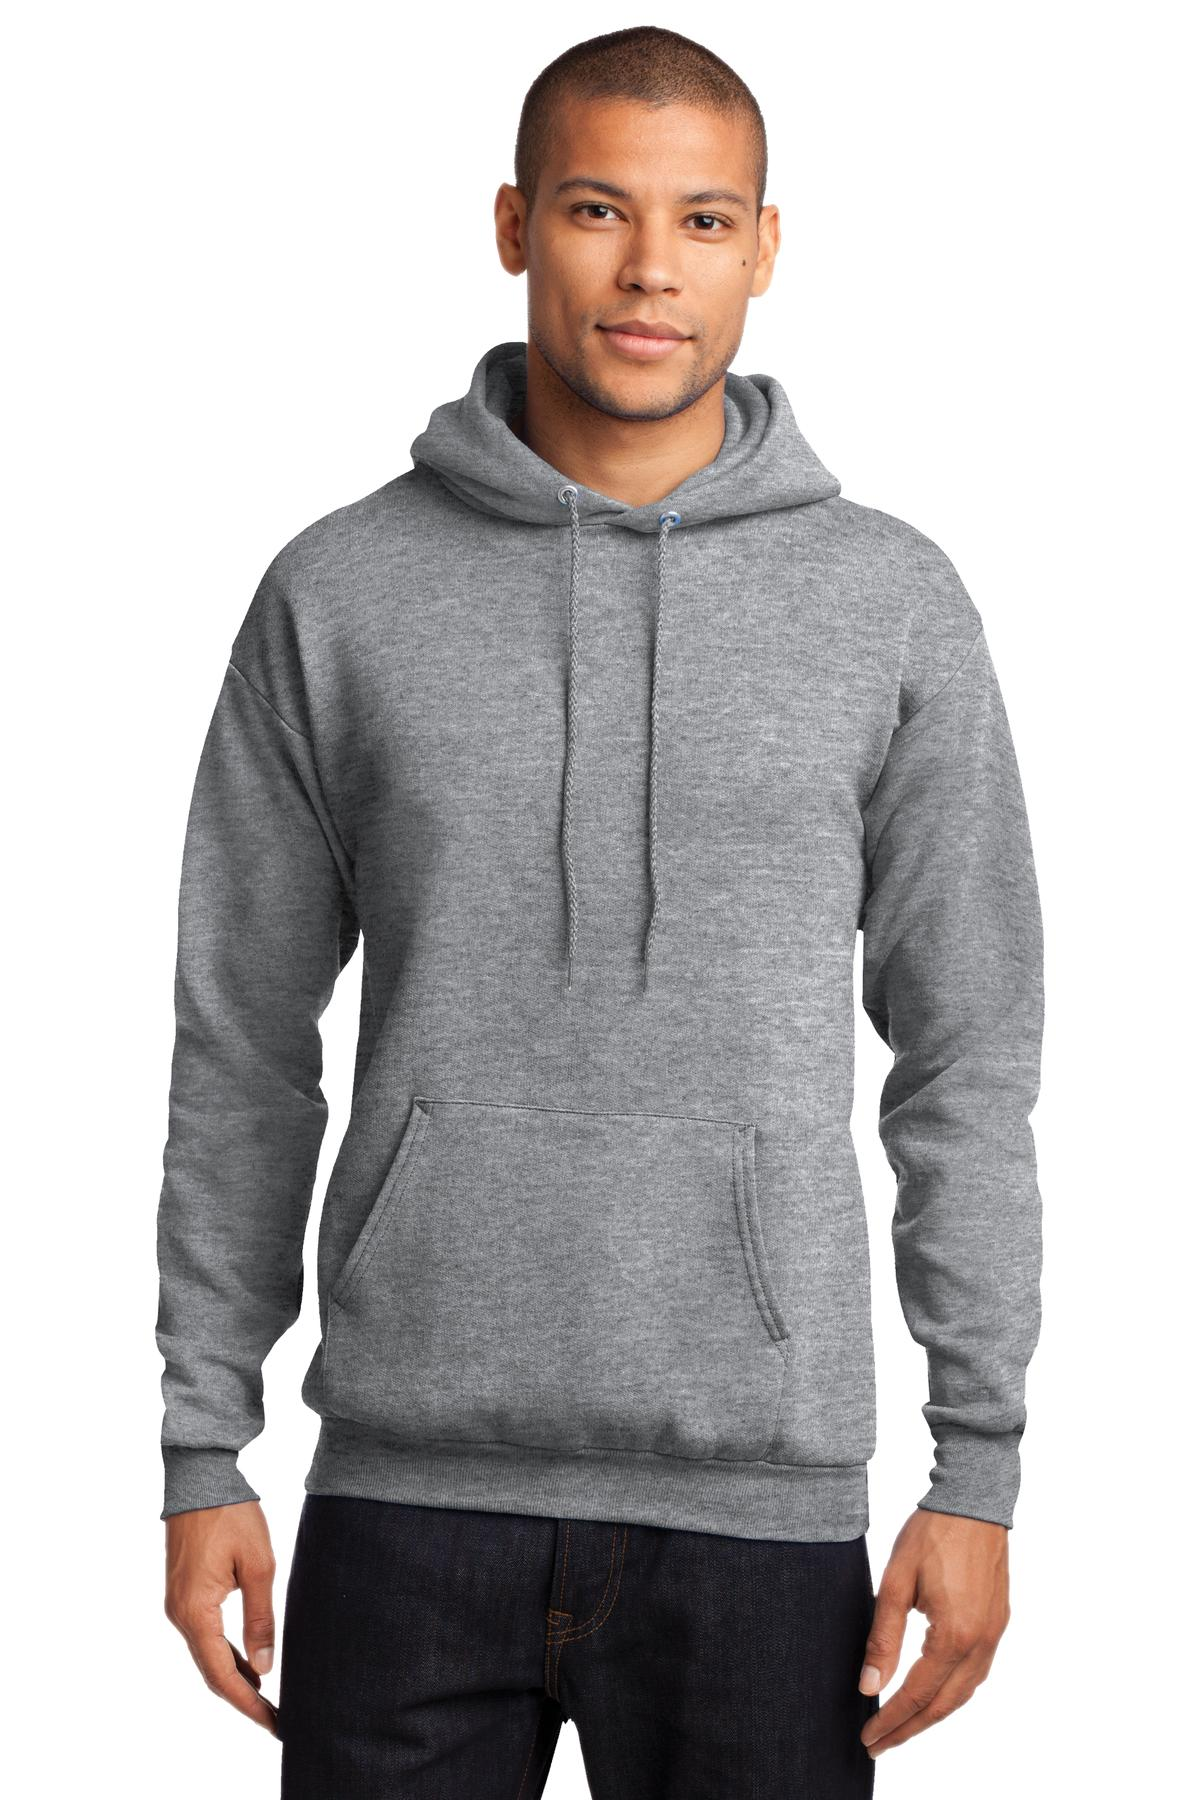 Port & Company ®  - Core Fleece Pullover Hooded Sweatshirt. PC78H - Athletic Heather